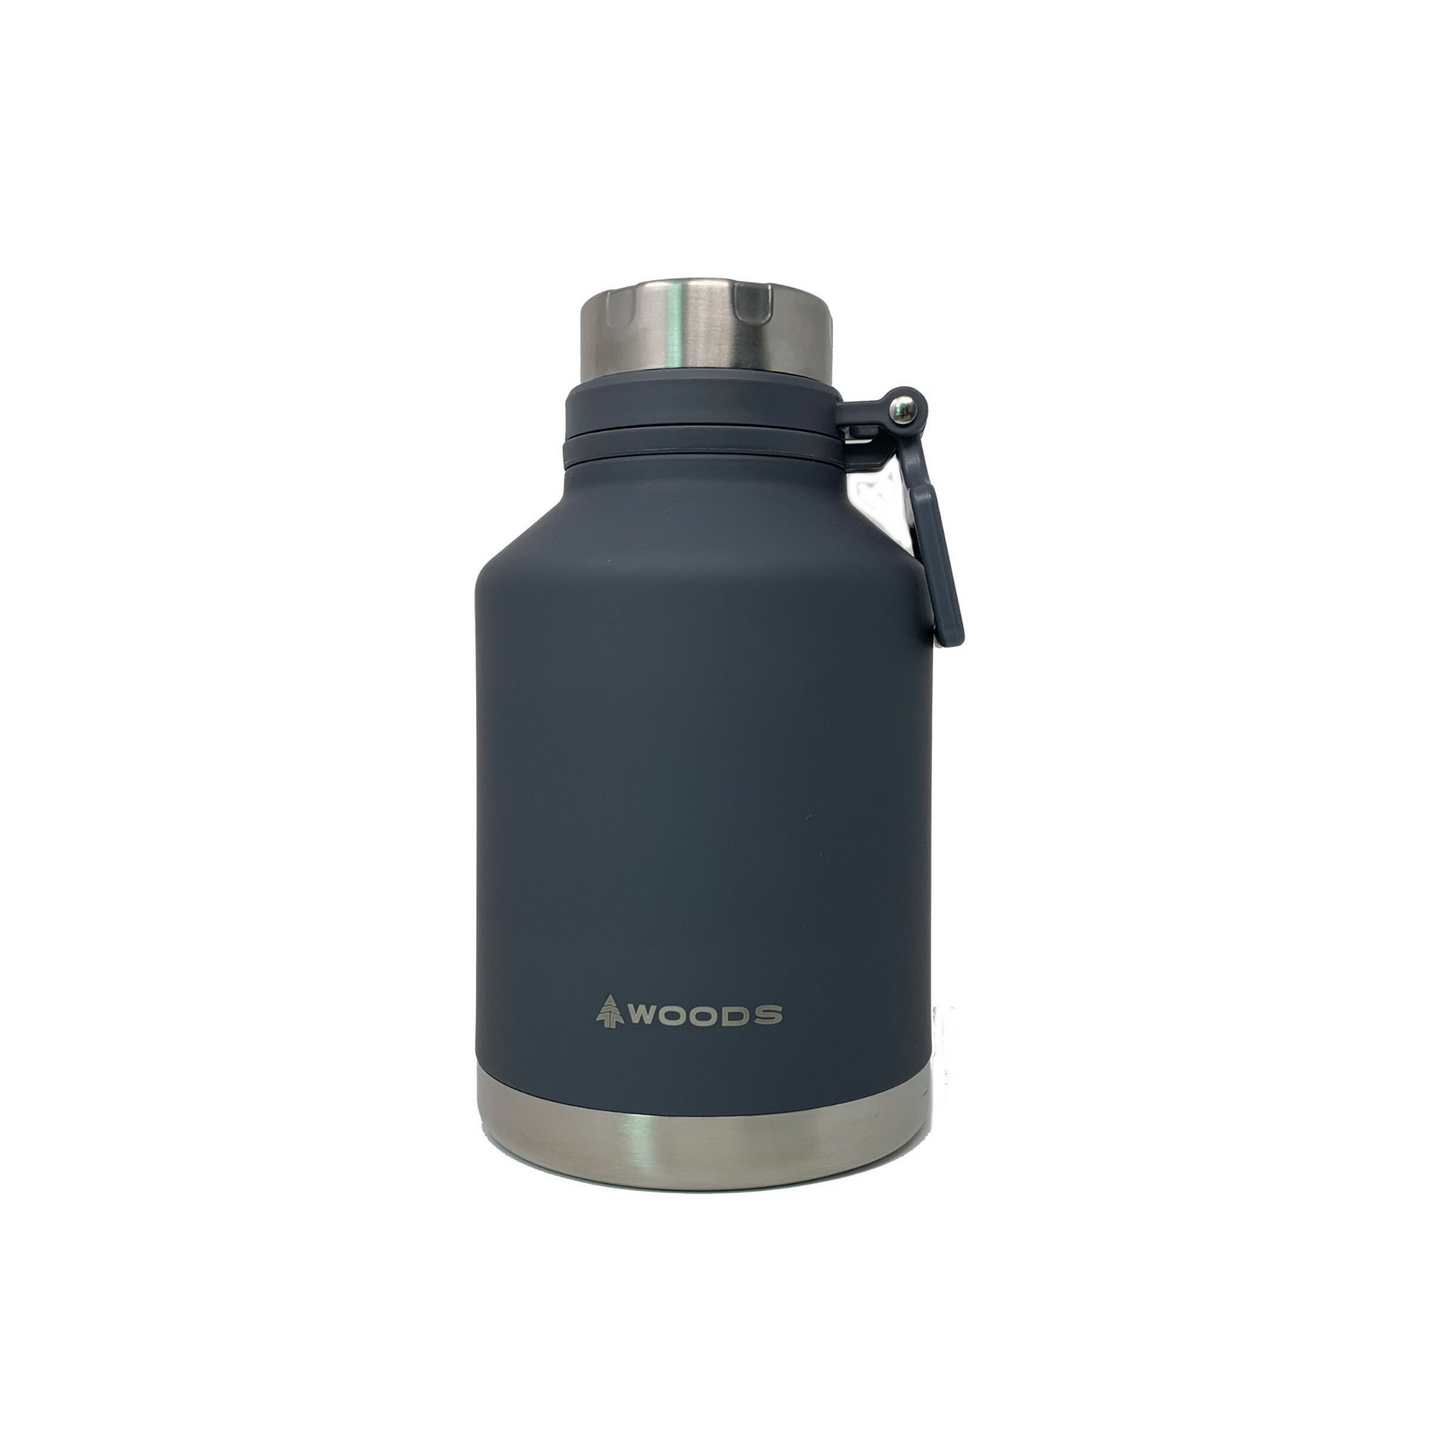 Woods 41 oz Growler / Tumbler Vacuum Insulated Stainless Steel Water Bottle Gray